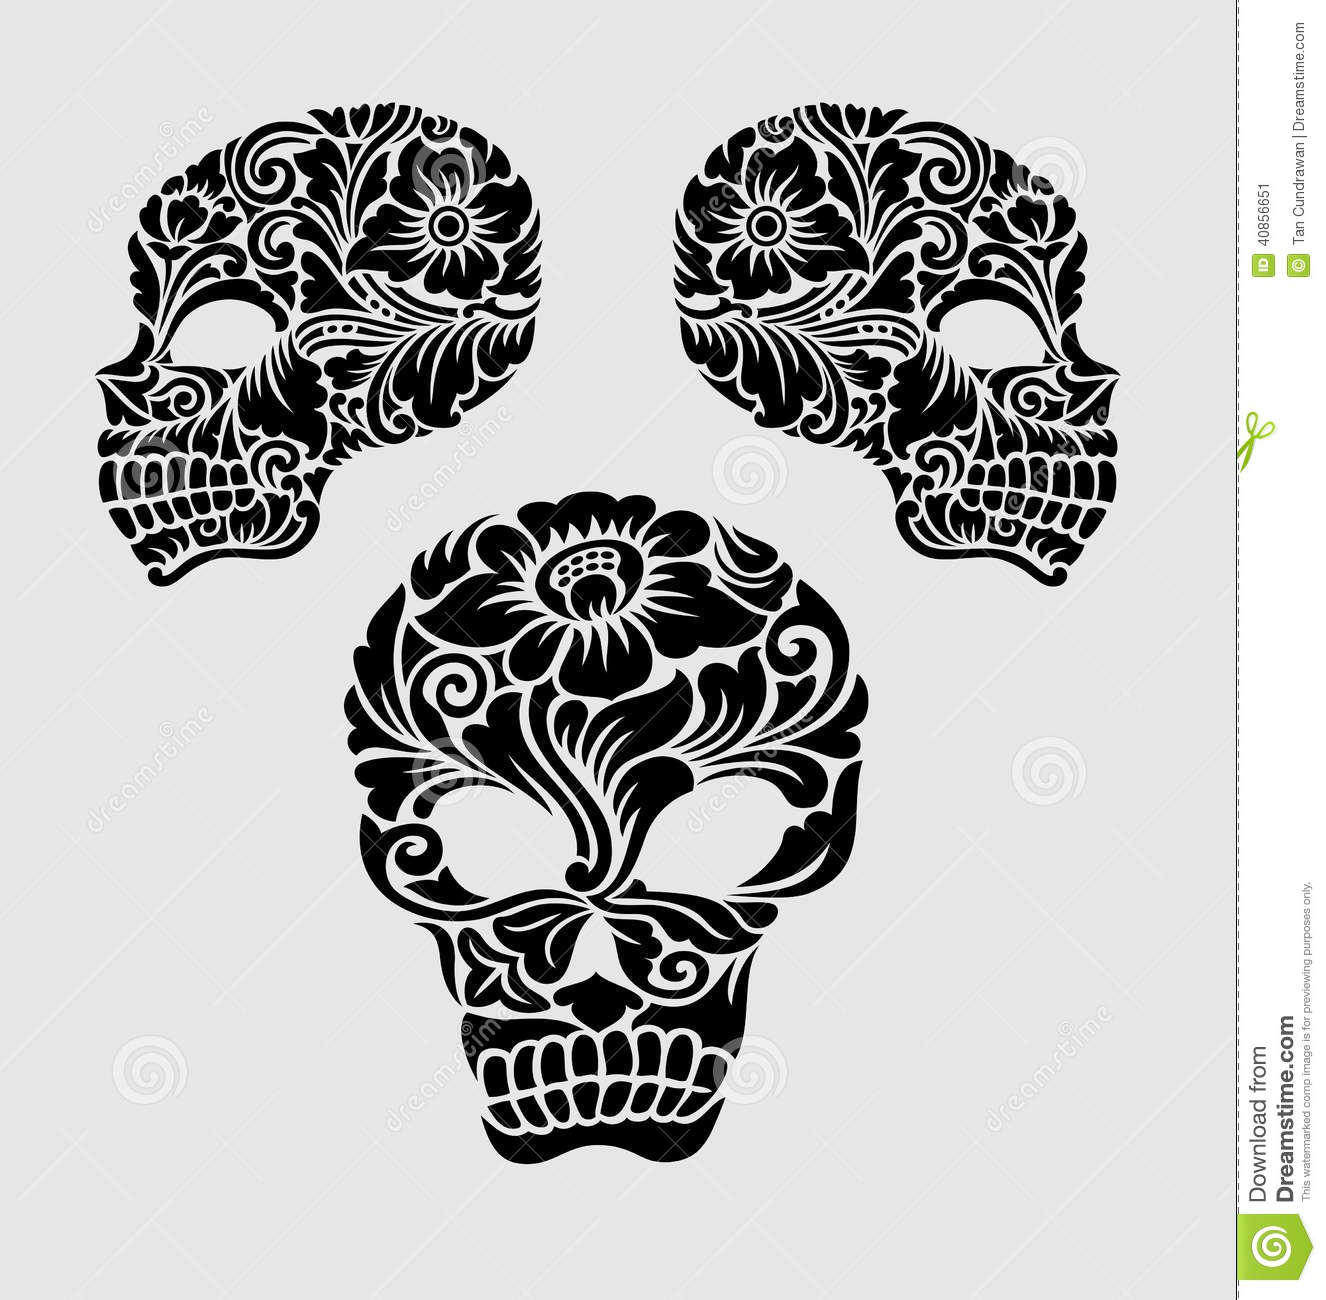 Skull Head Floral Ornament Decoration Stock Vector Image